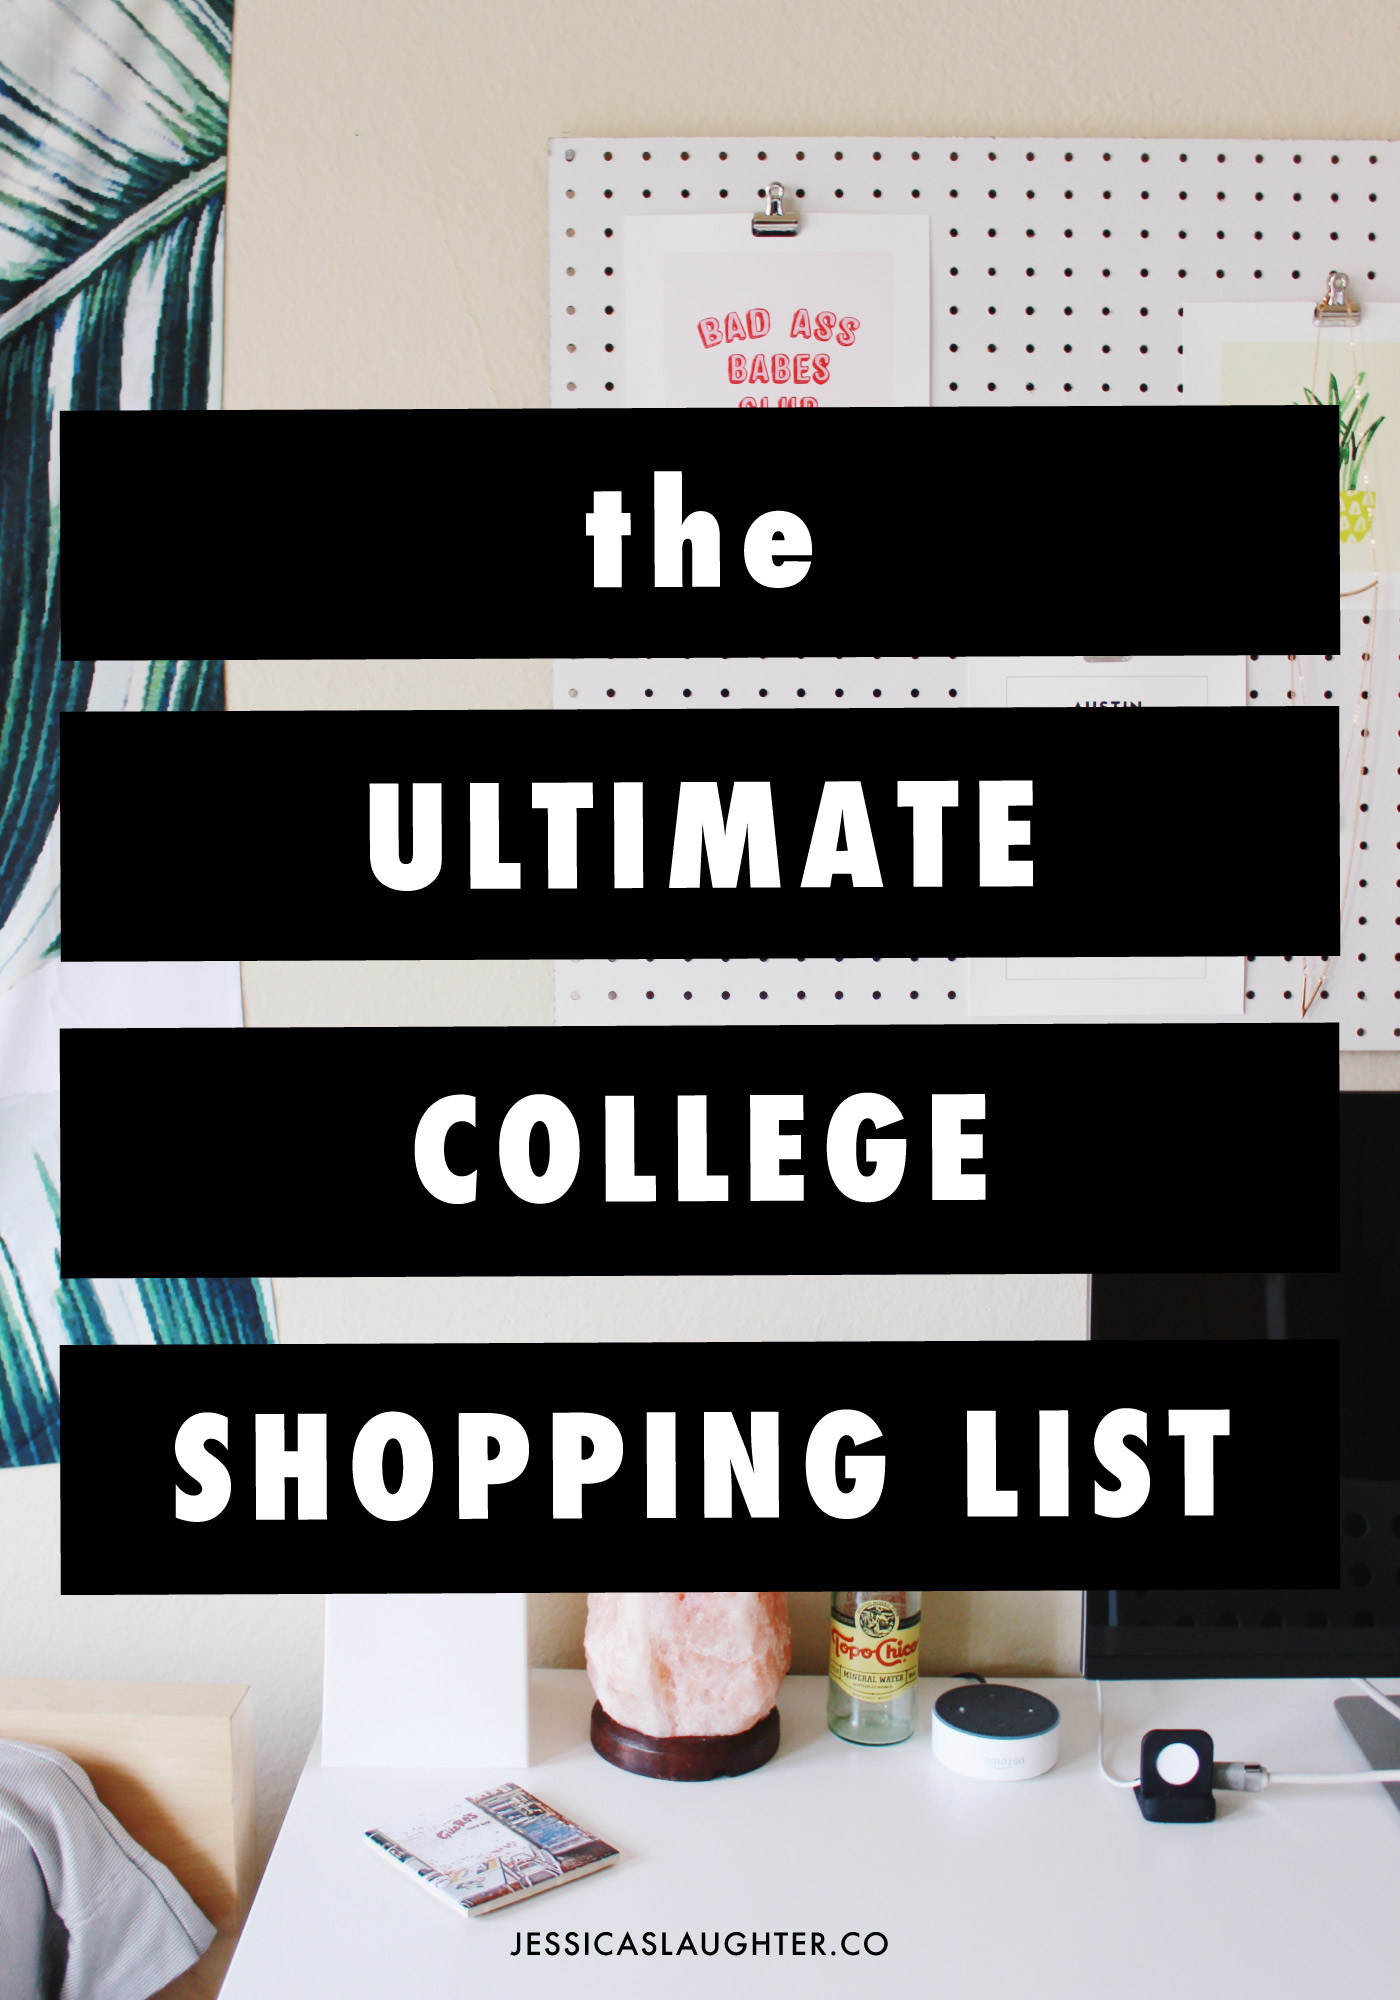 the ultimate college shopping list jessica slaughter